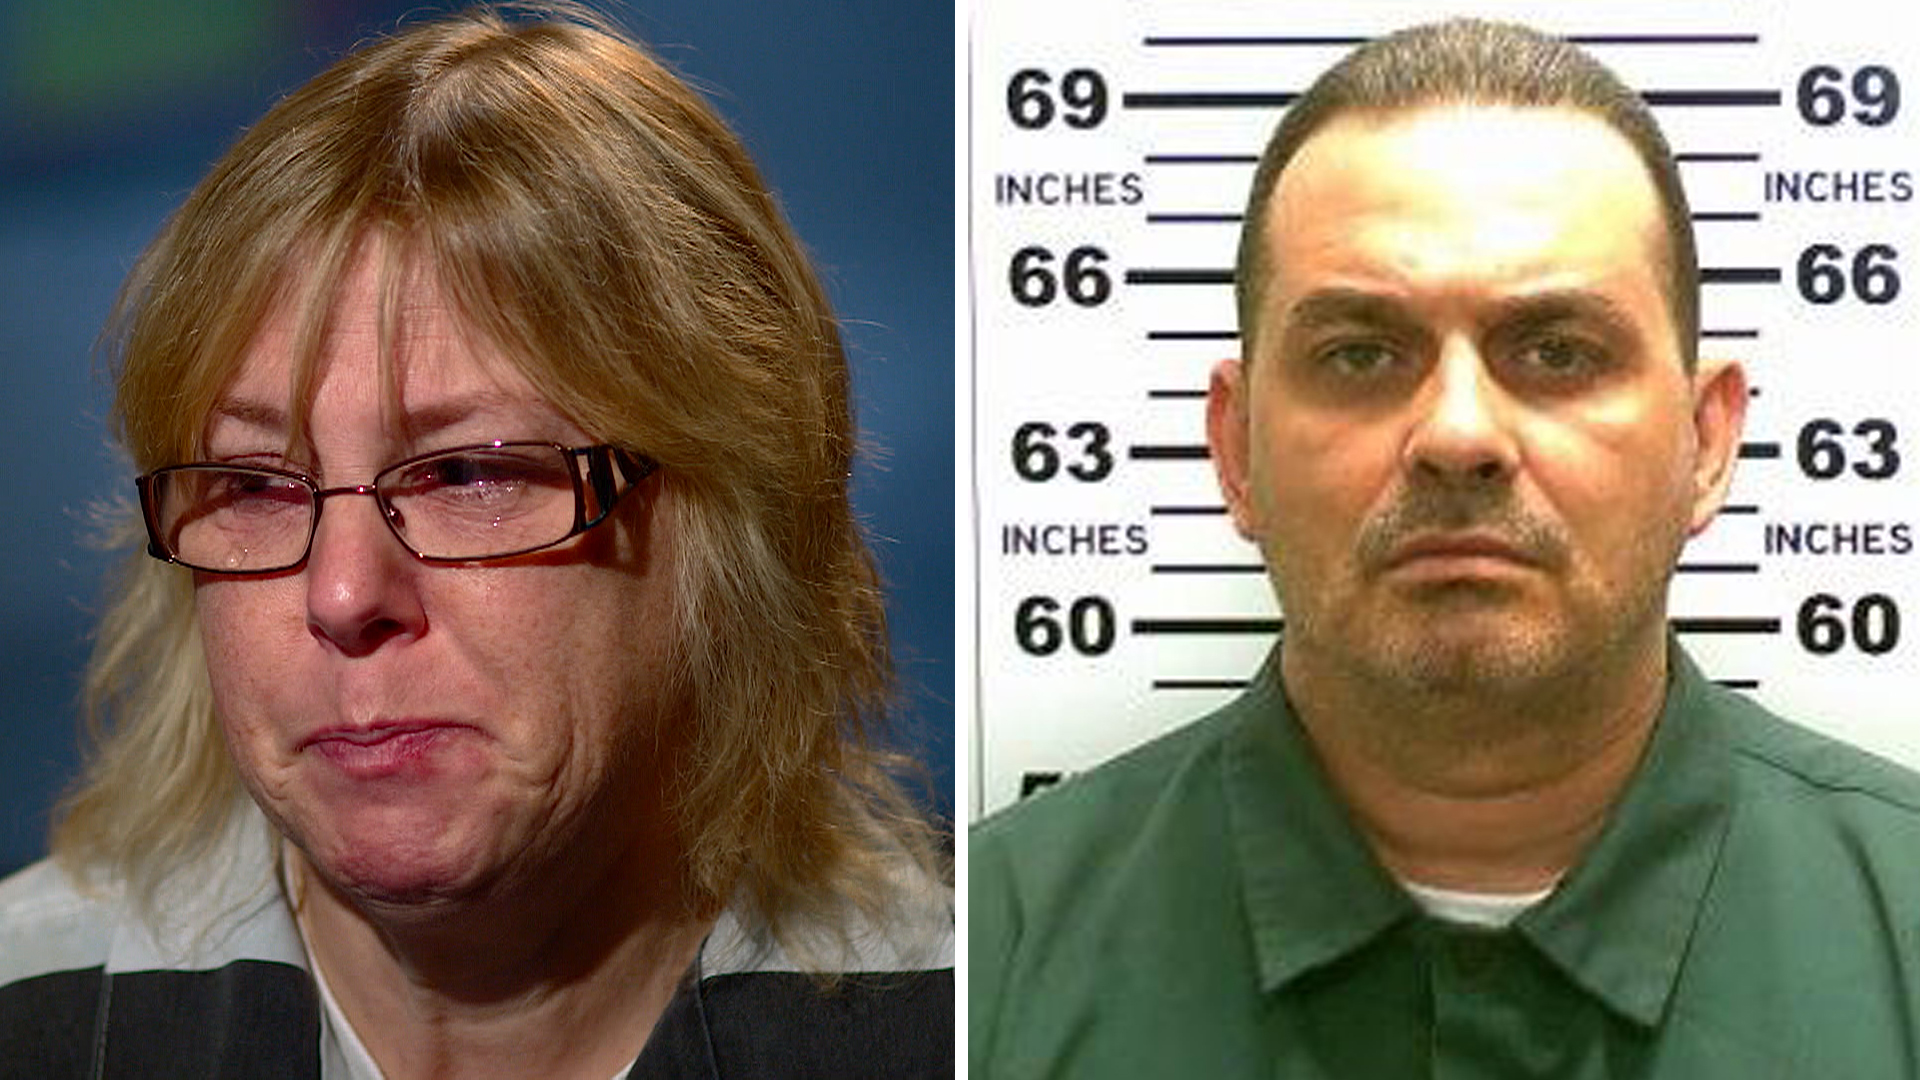 Joyce Mitchell: 'There was never any love' with escaped inmate